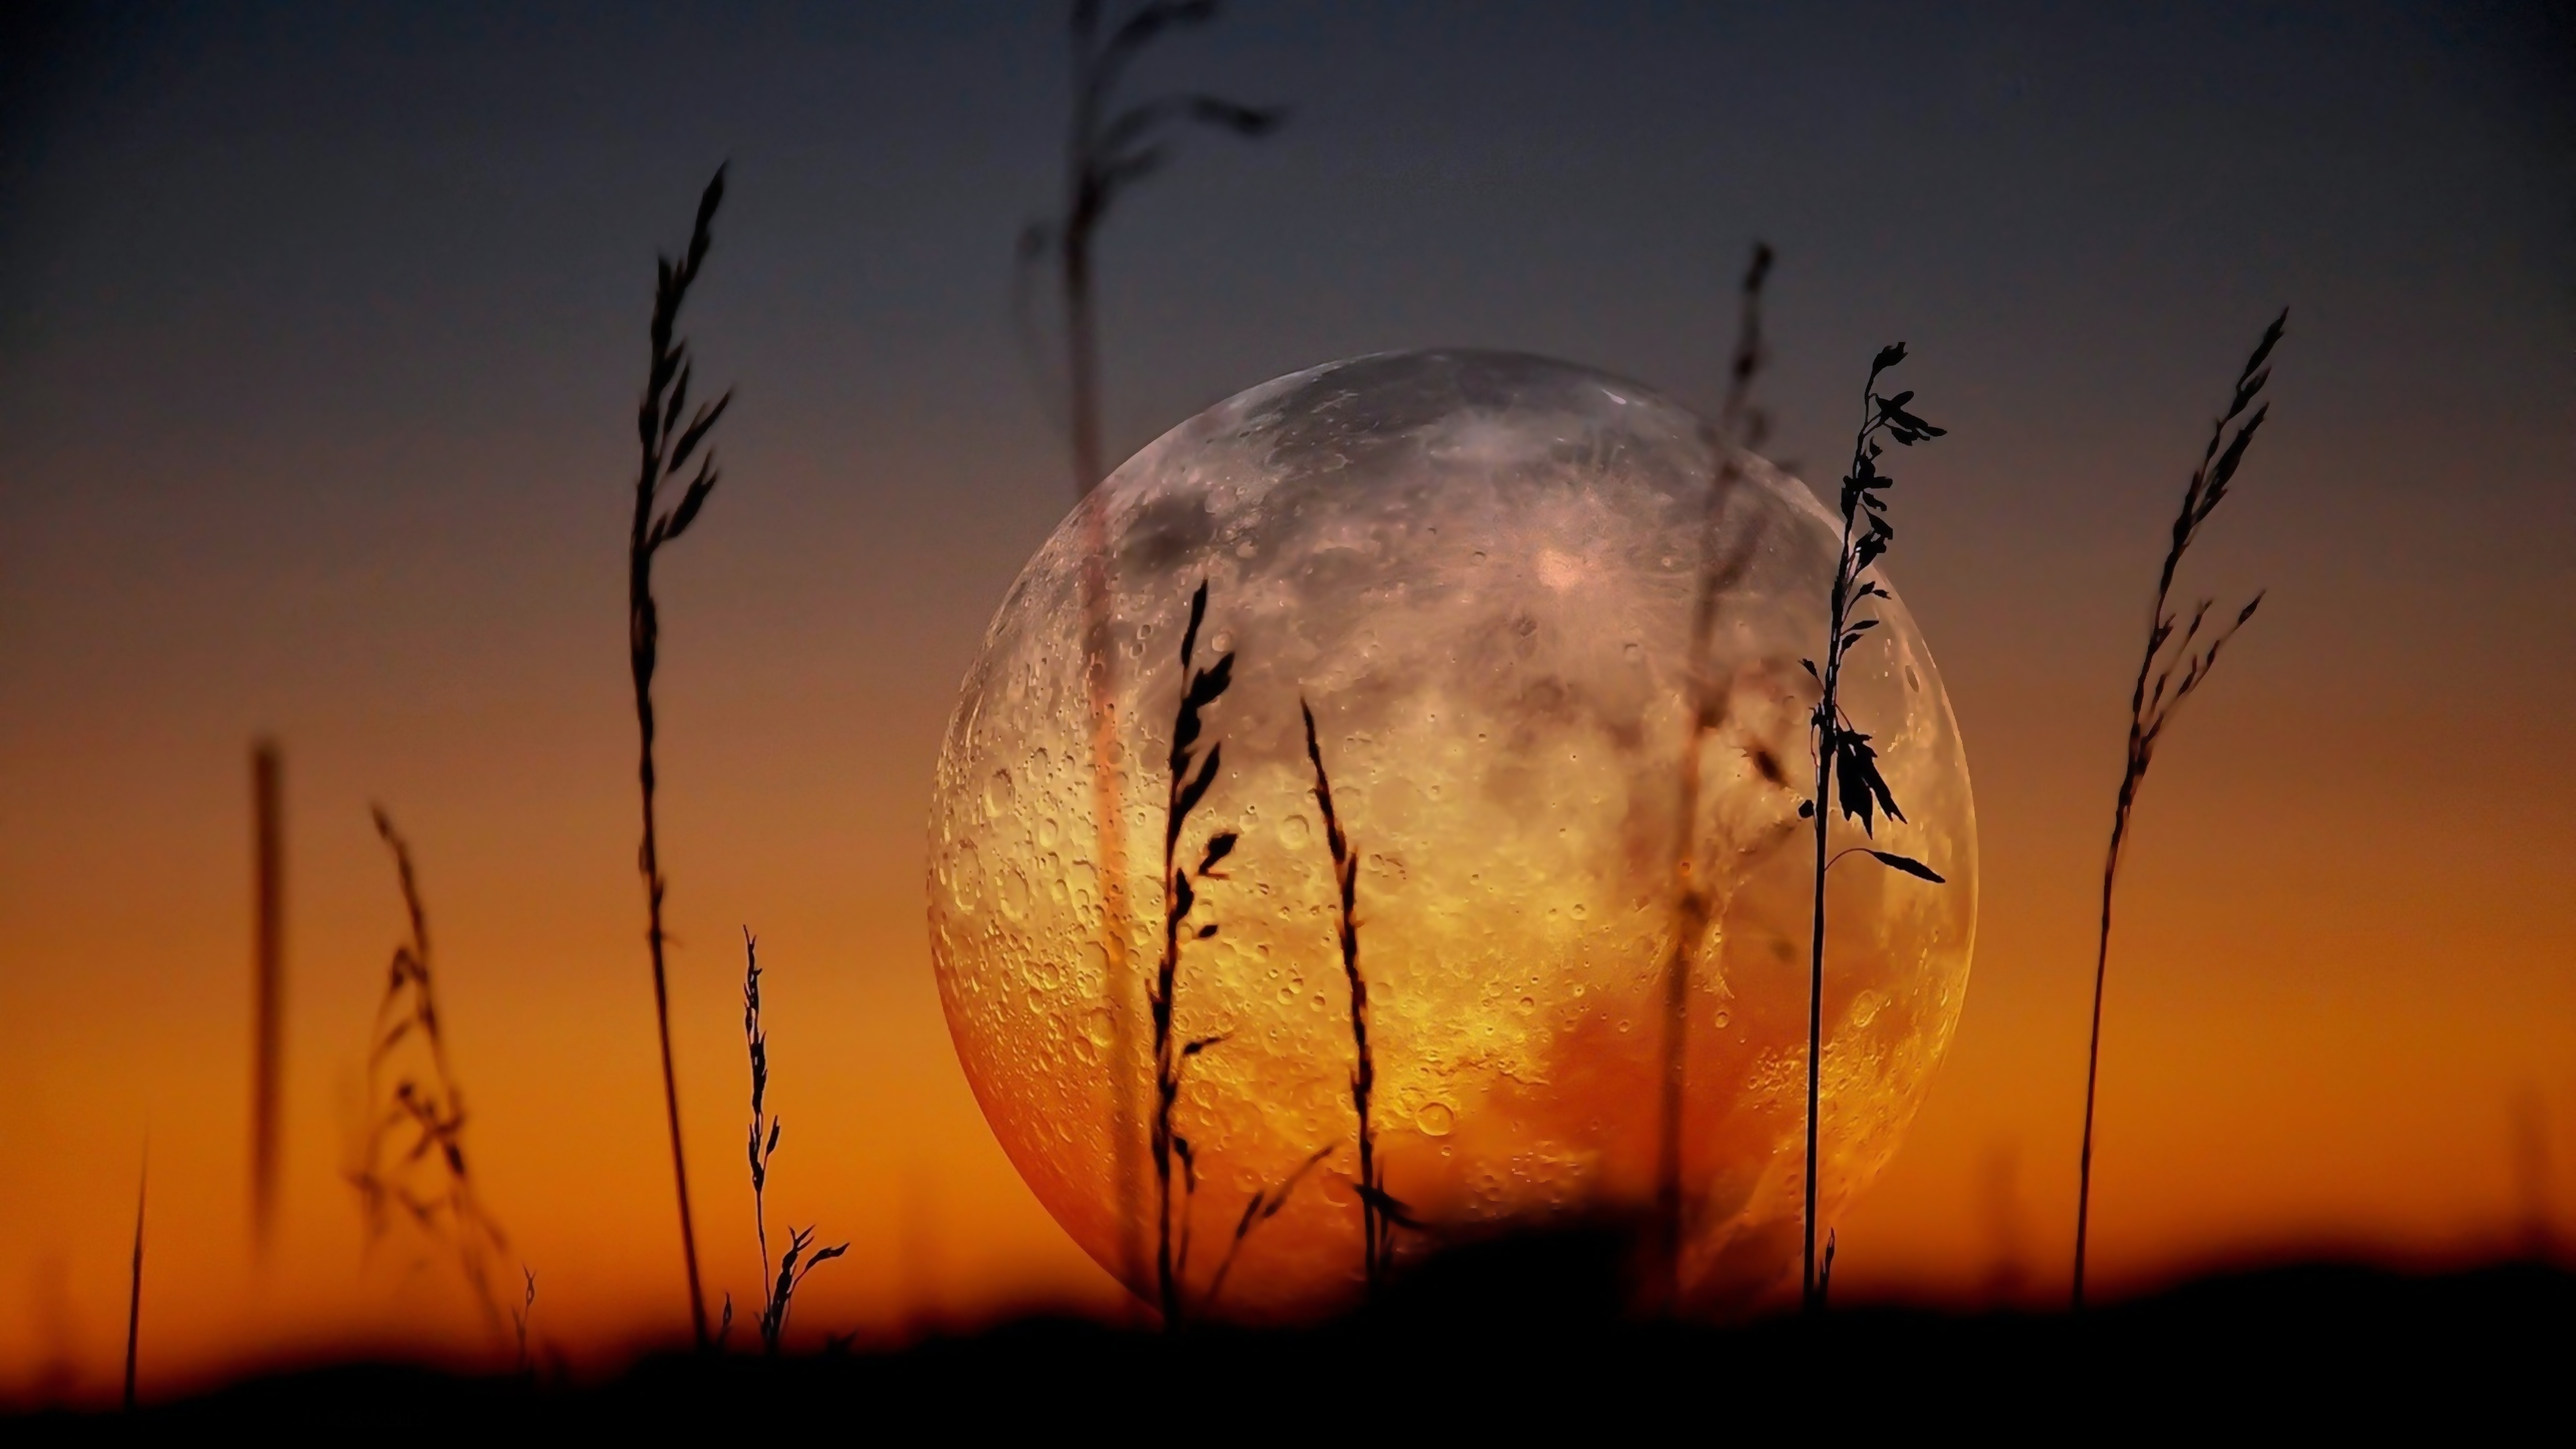 307 Moon Hd Wallpapers Background Images Wallpaper Abyss